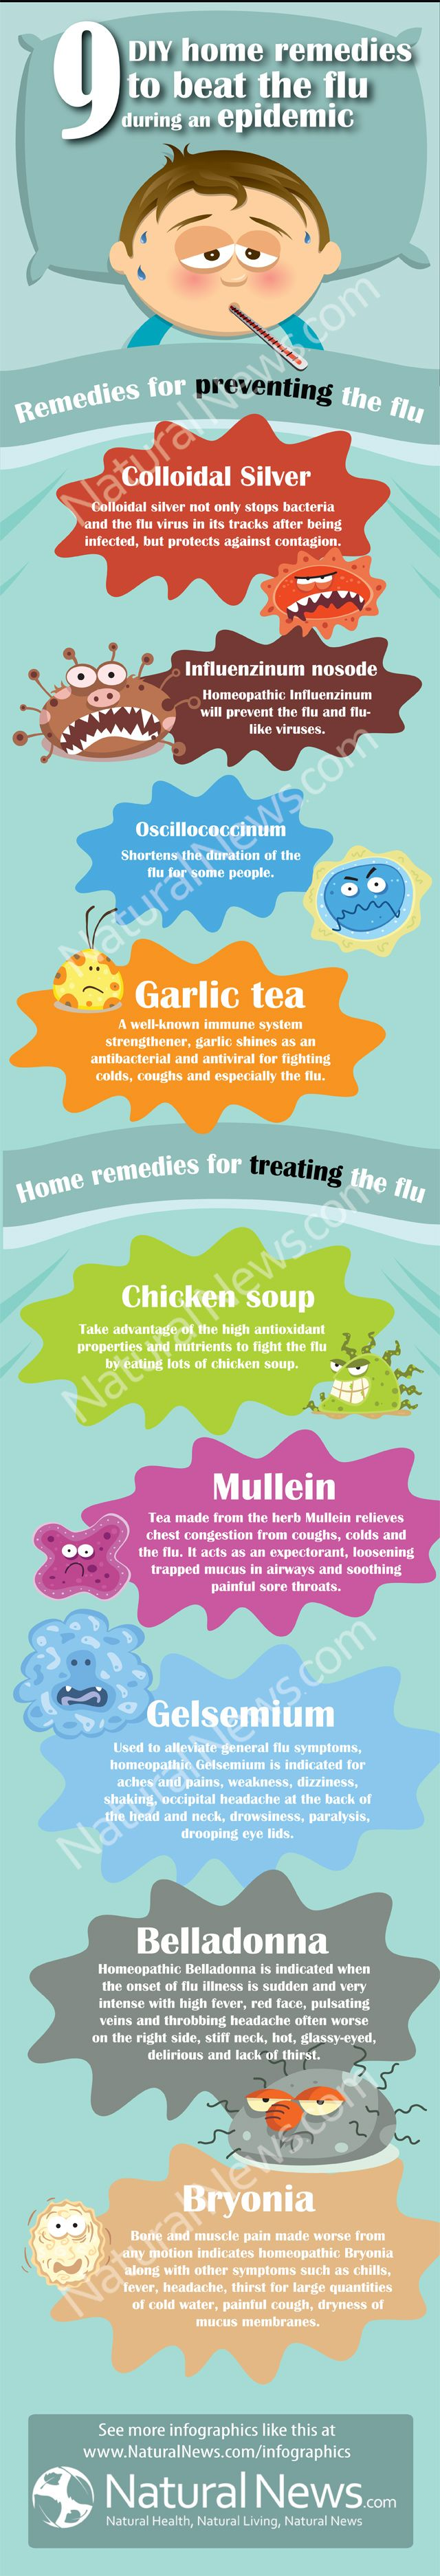 9 Do-it-Yourself Home Remedies to Beat the Flu During an Epidemic by The Health Ranger